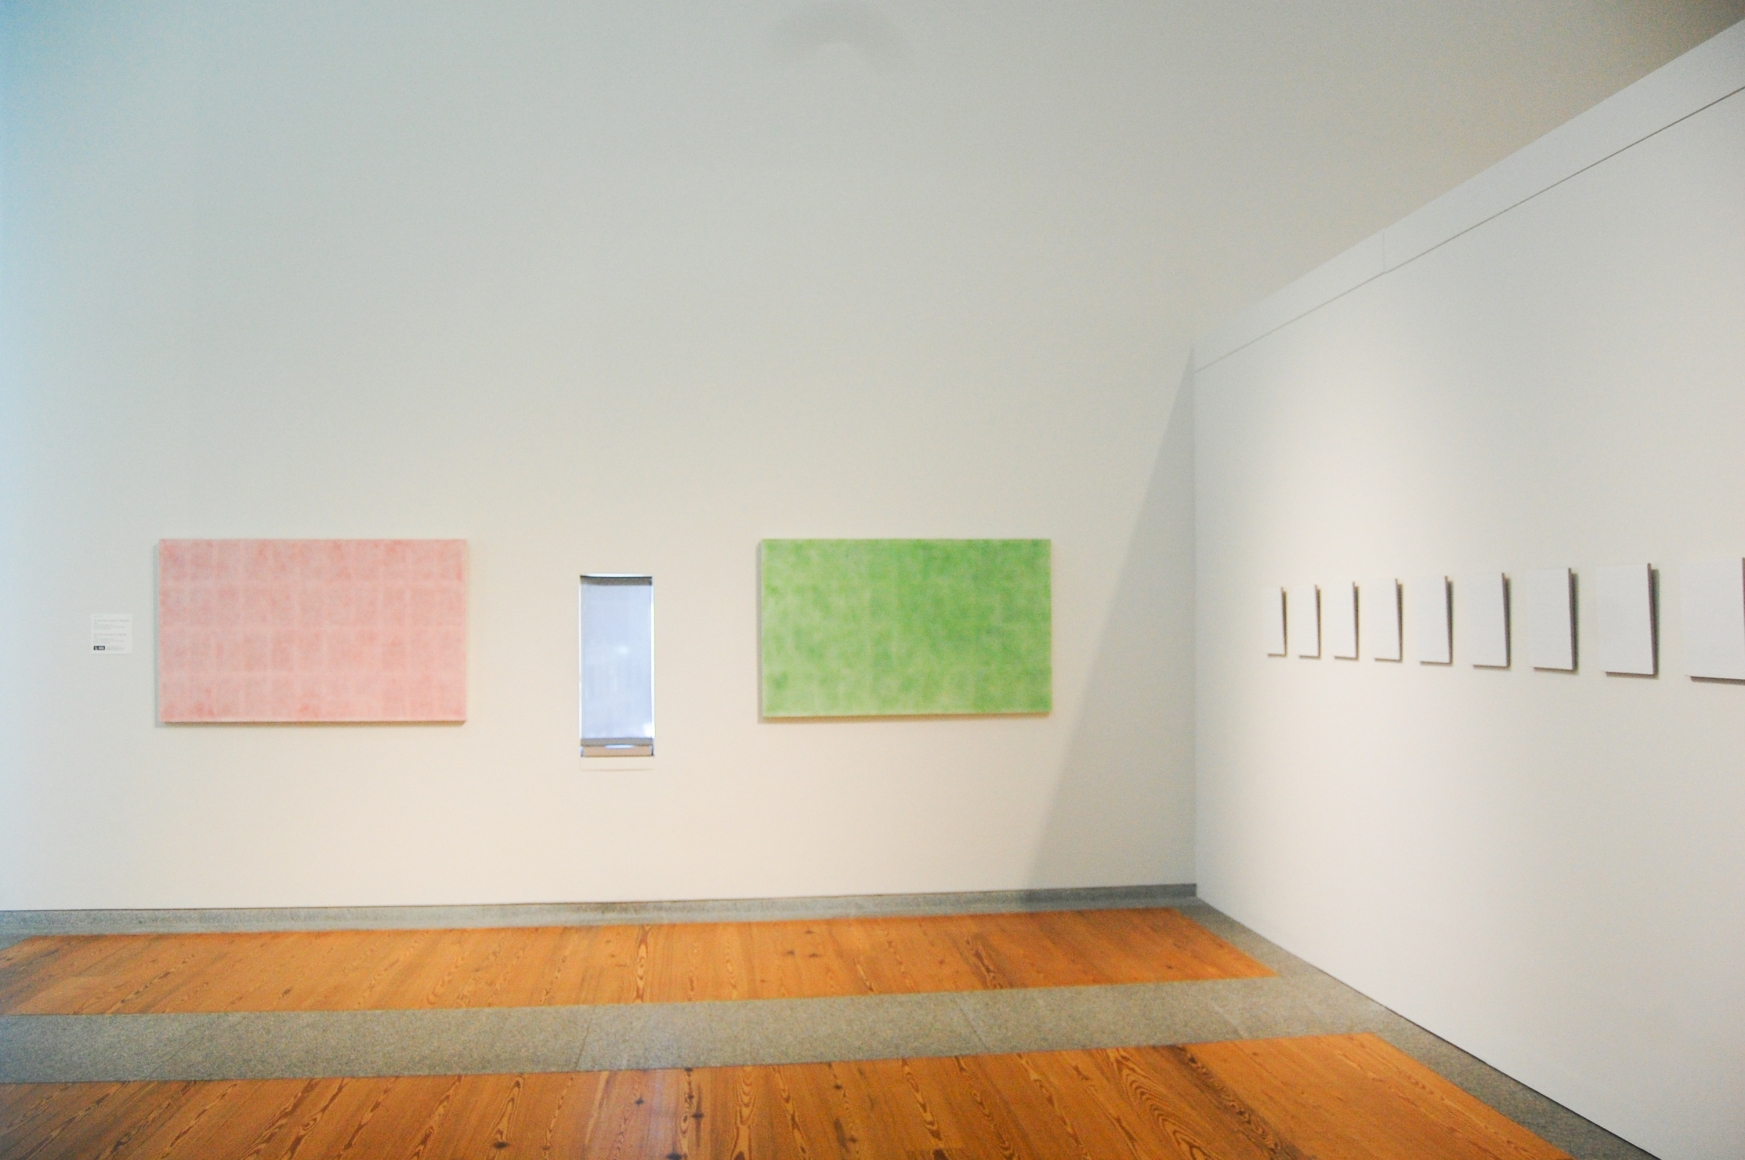 Unbound: Tim Rollins and K.O.S, Installation view,Portland Museum of Art, Portland, ME